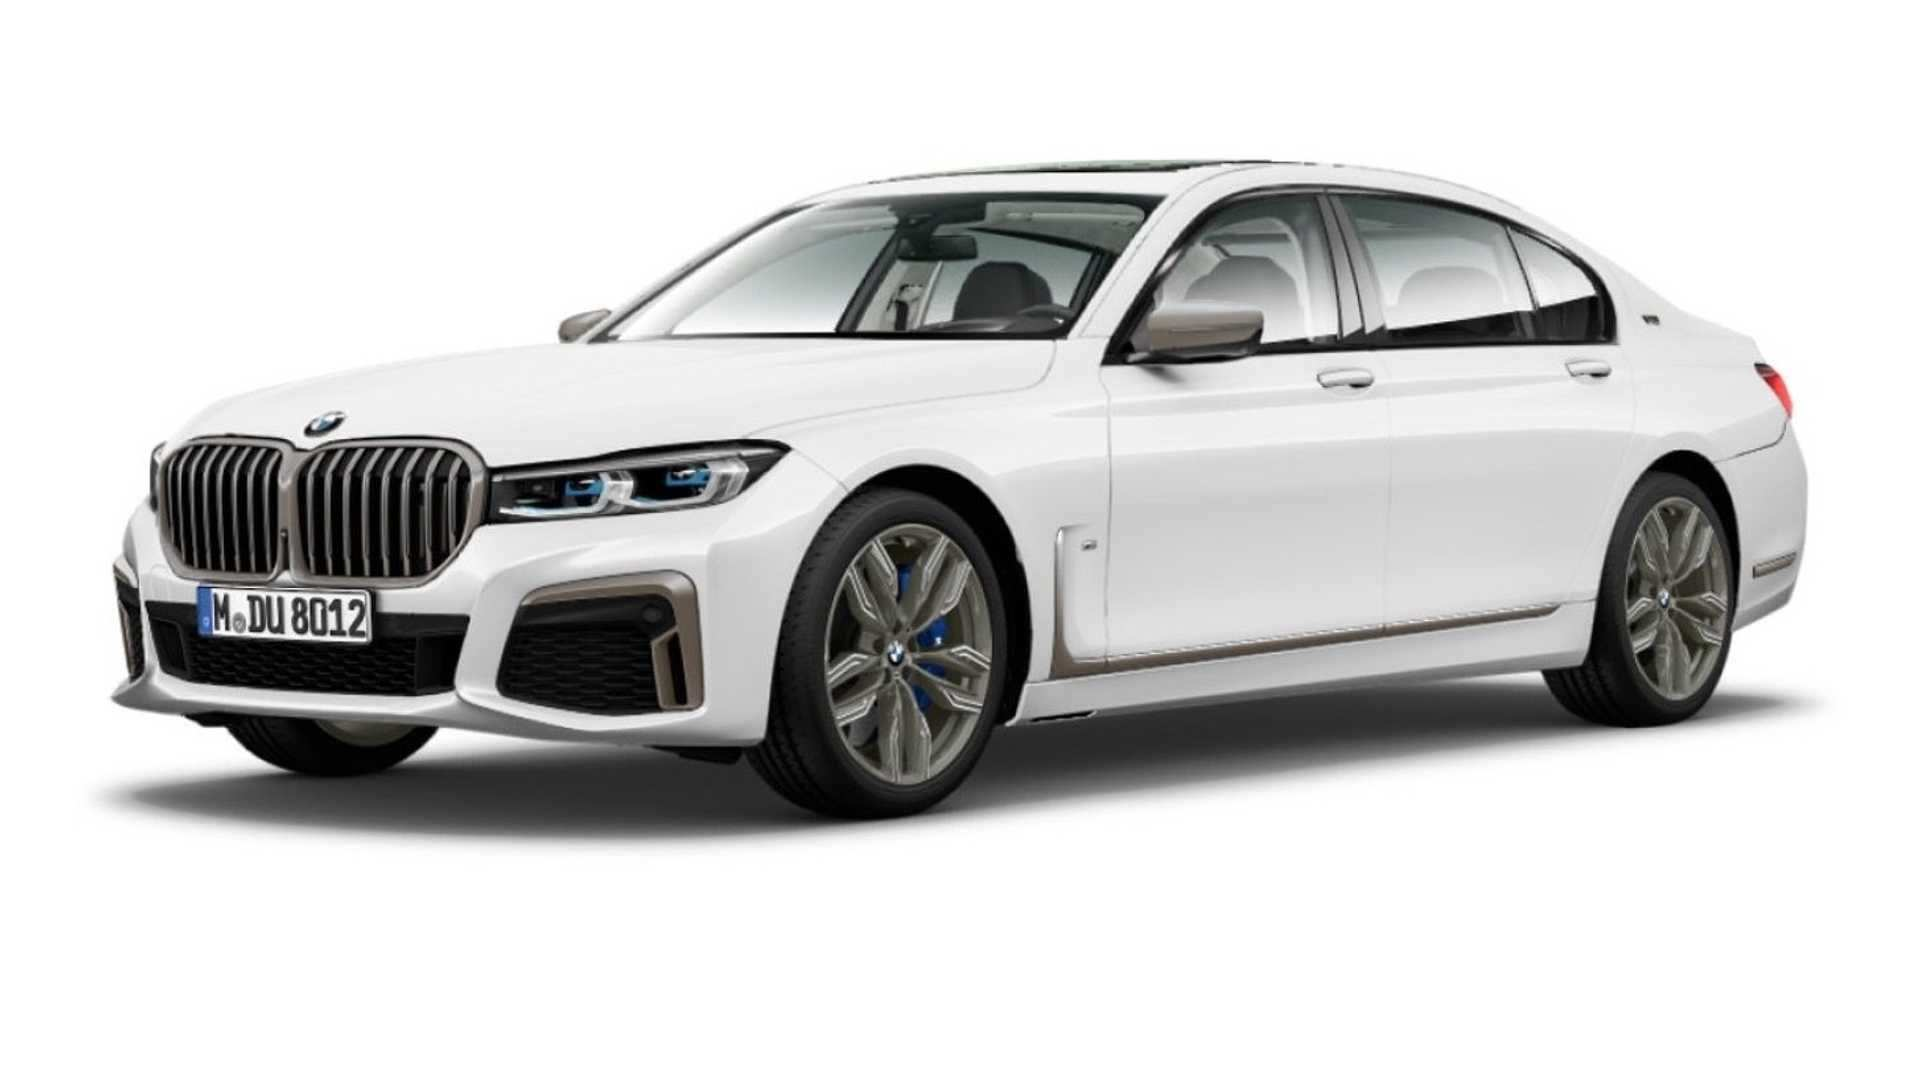 65 Great 2020 BMW Granite New Review with 2020 BMW Granite